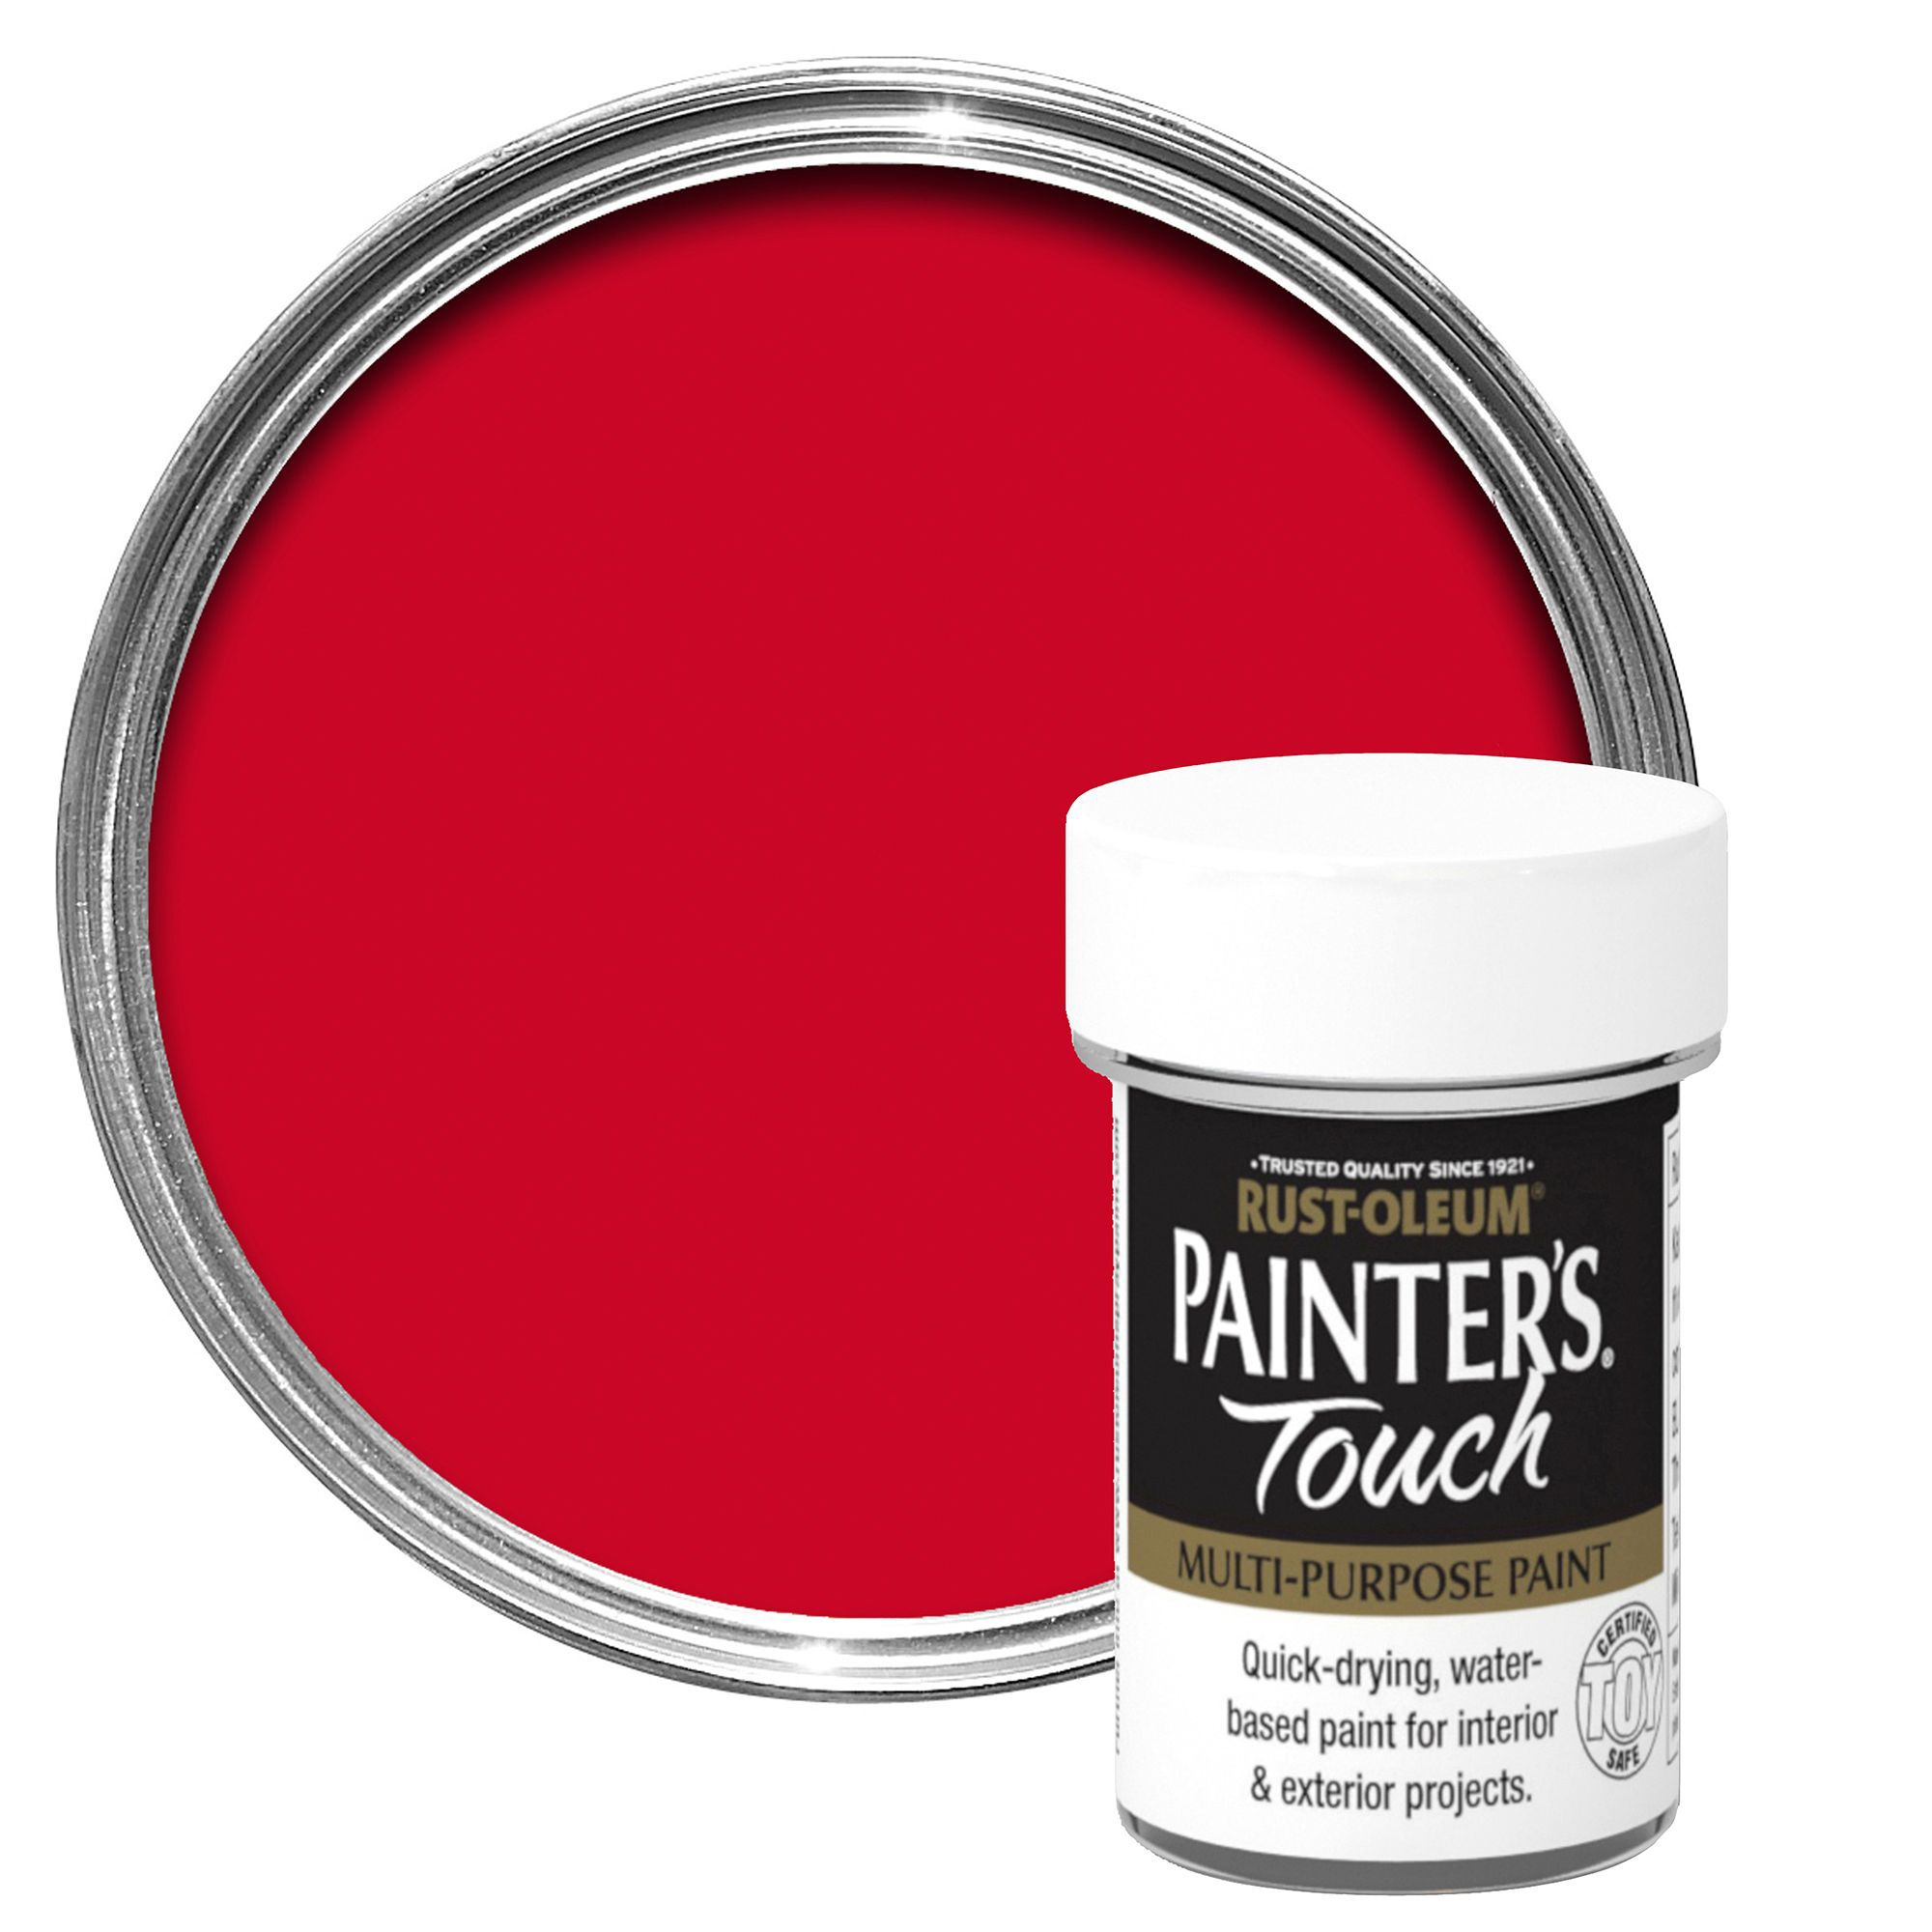 Rust-oleum Painter's Touch Interior & Exterior Bright Red Gloss Multipurpose Paint 20ml